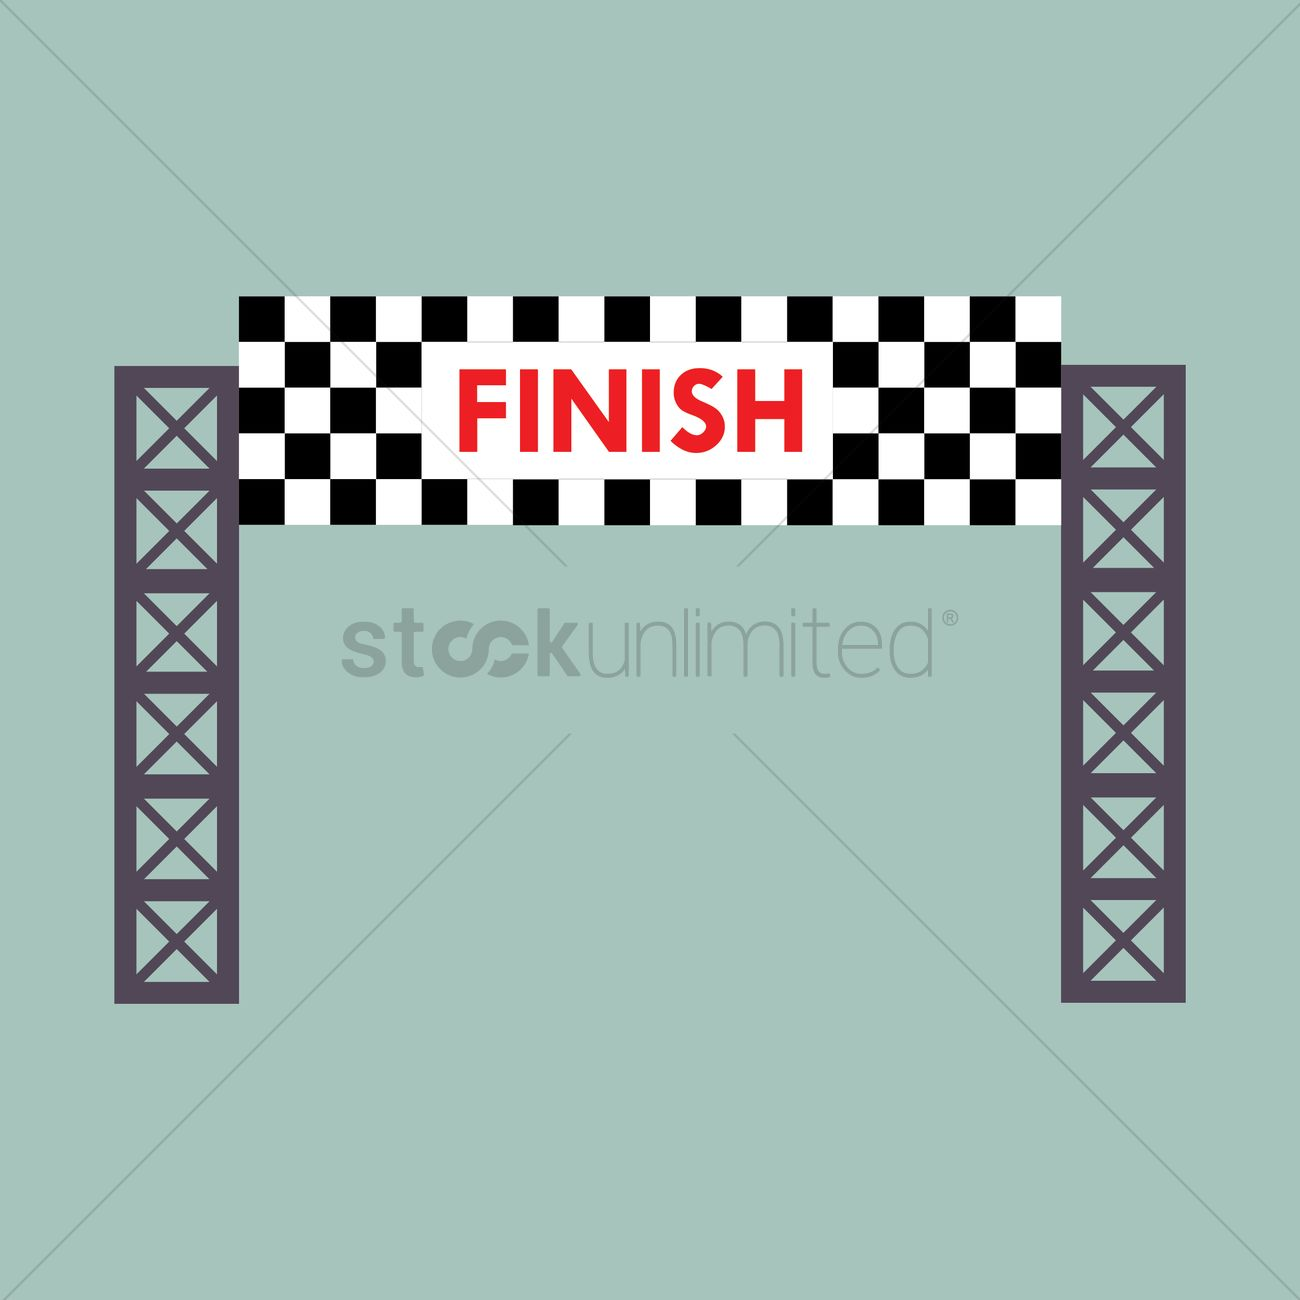 Finish line banner Vector Image - 1445594 | StockUnlimited